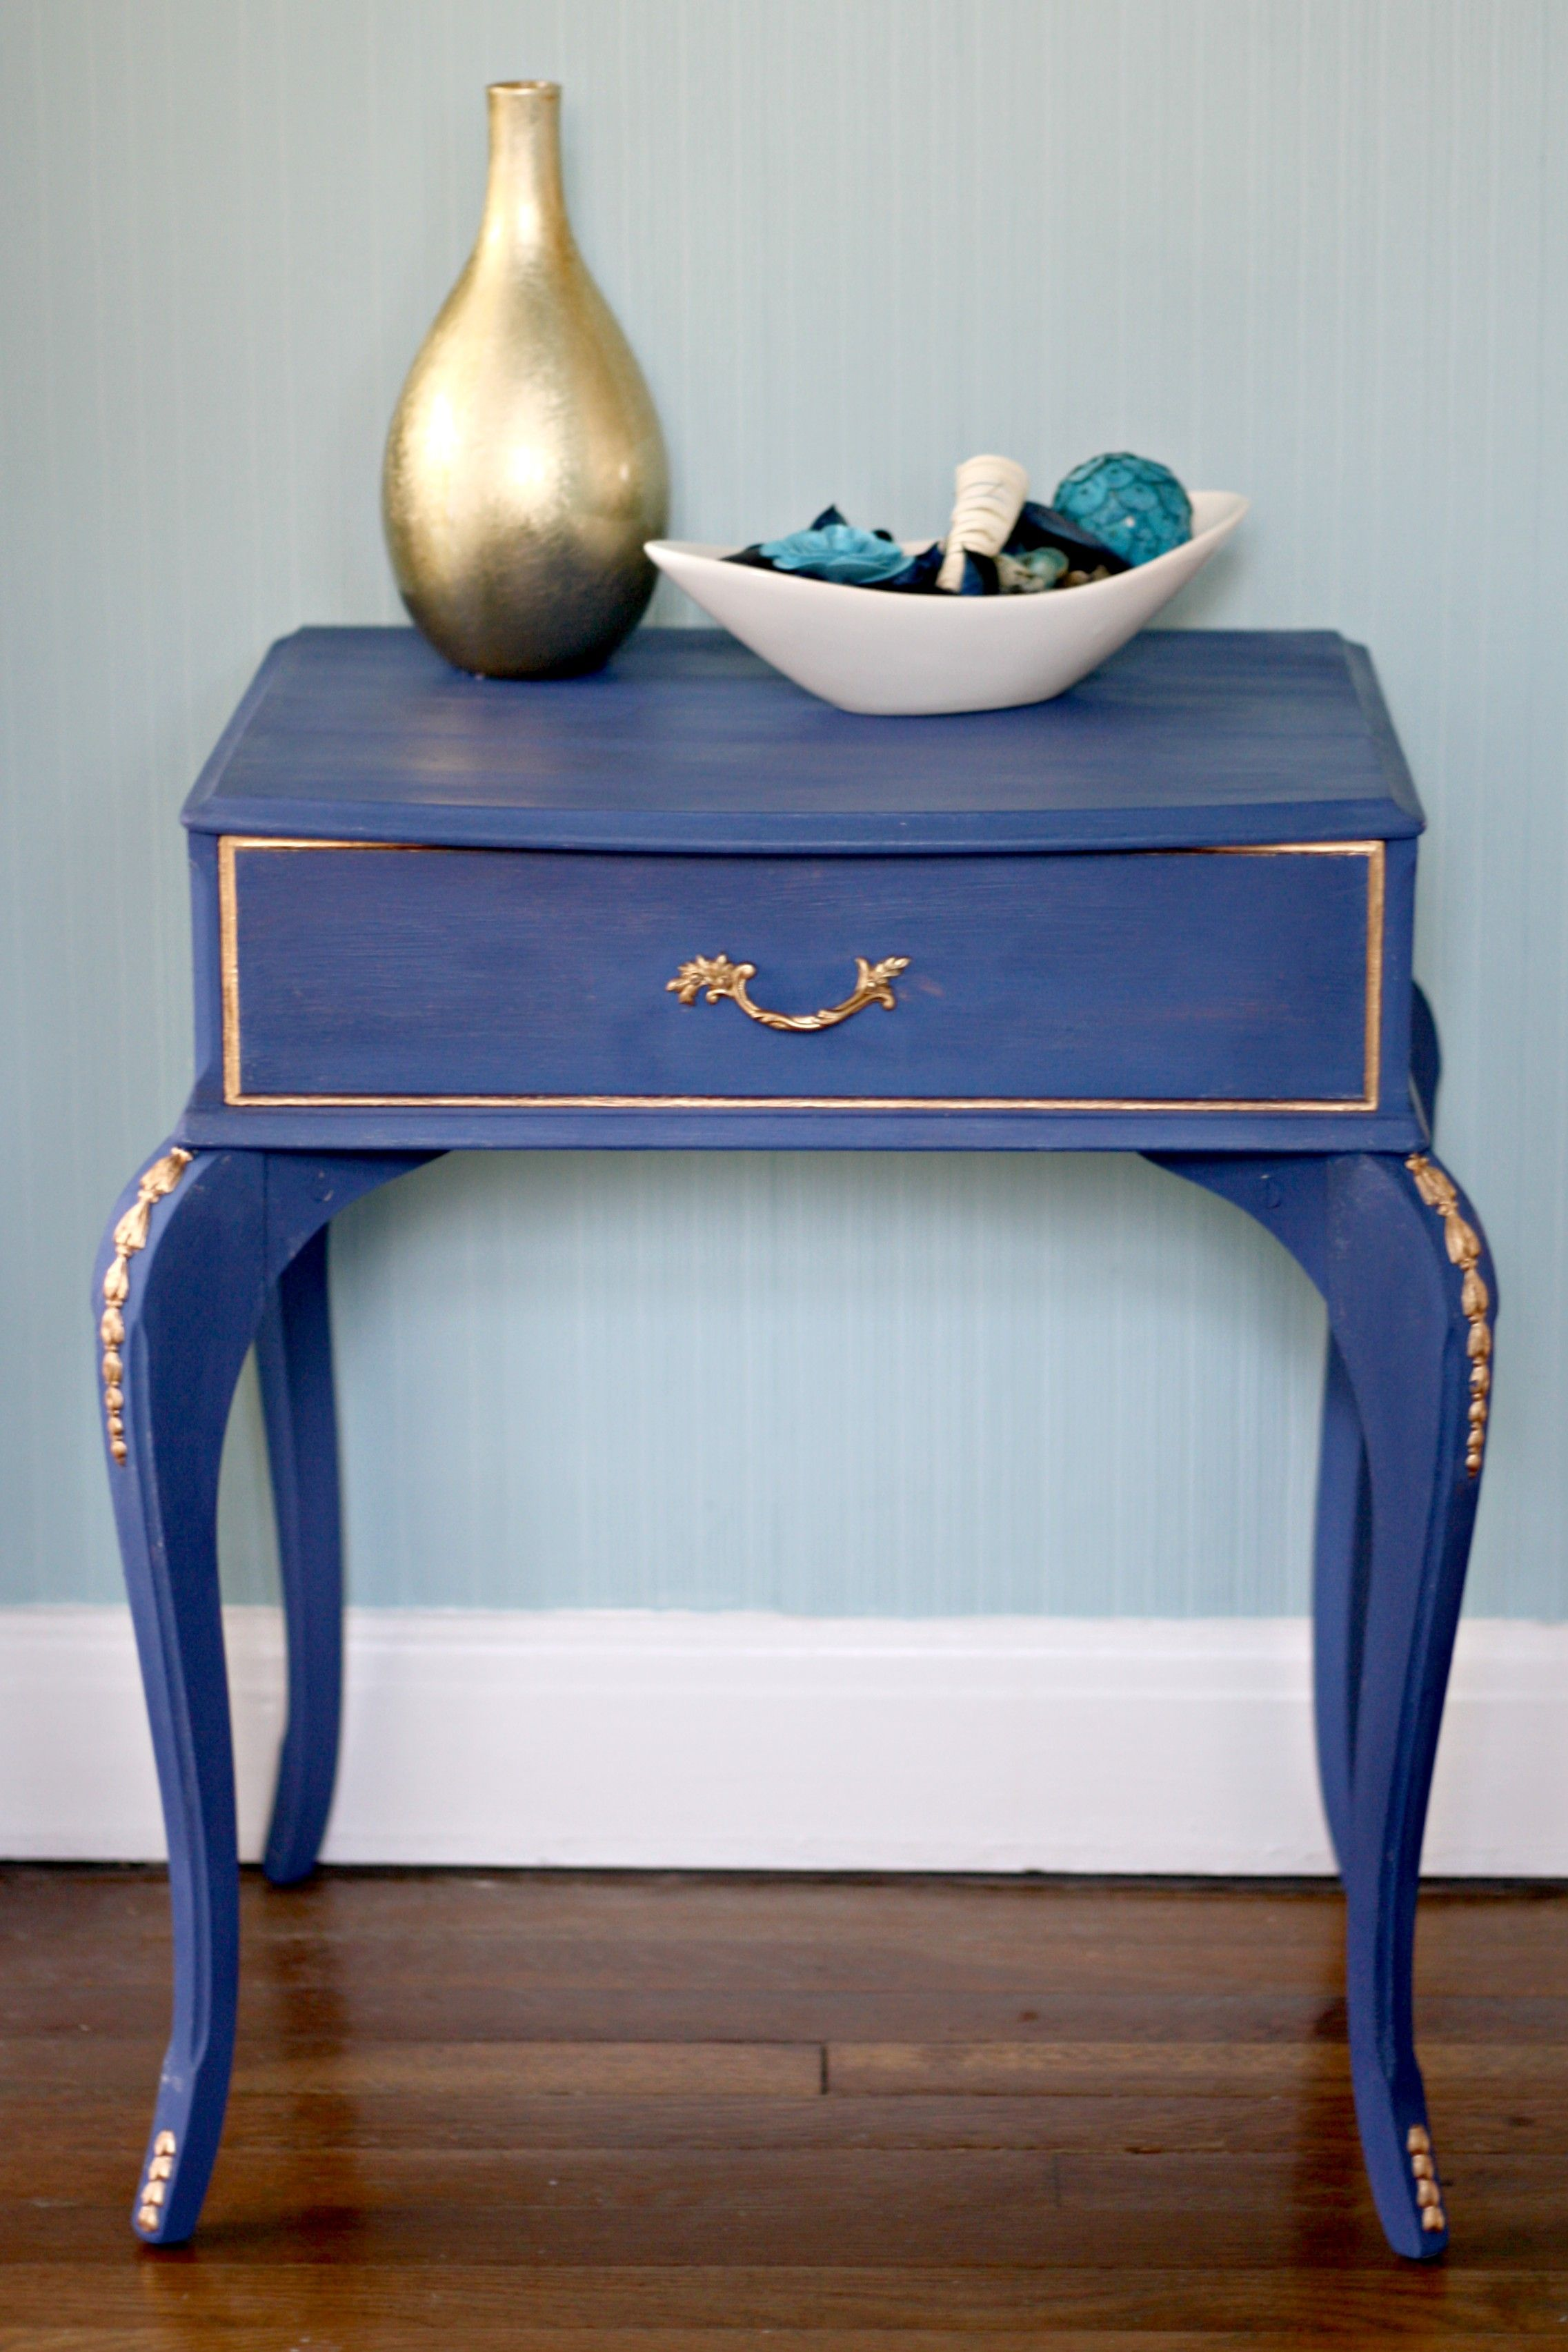 navy and gold end table upcycle blue turquoise painted tables propane fire pit powell monster bedroom furniture crown dog crate dining with chairs nightstand whalen industrial